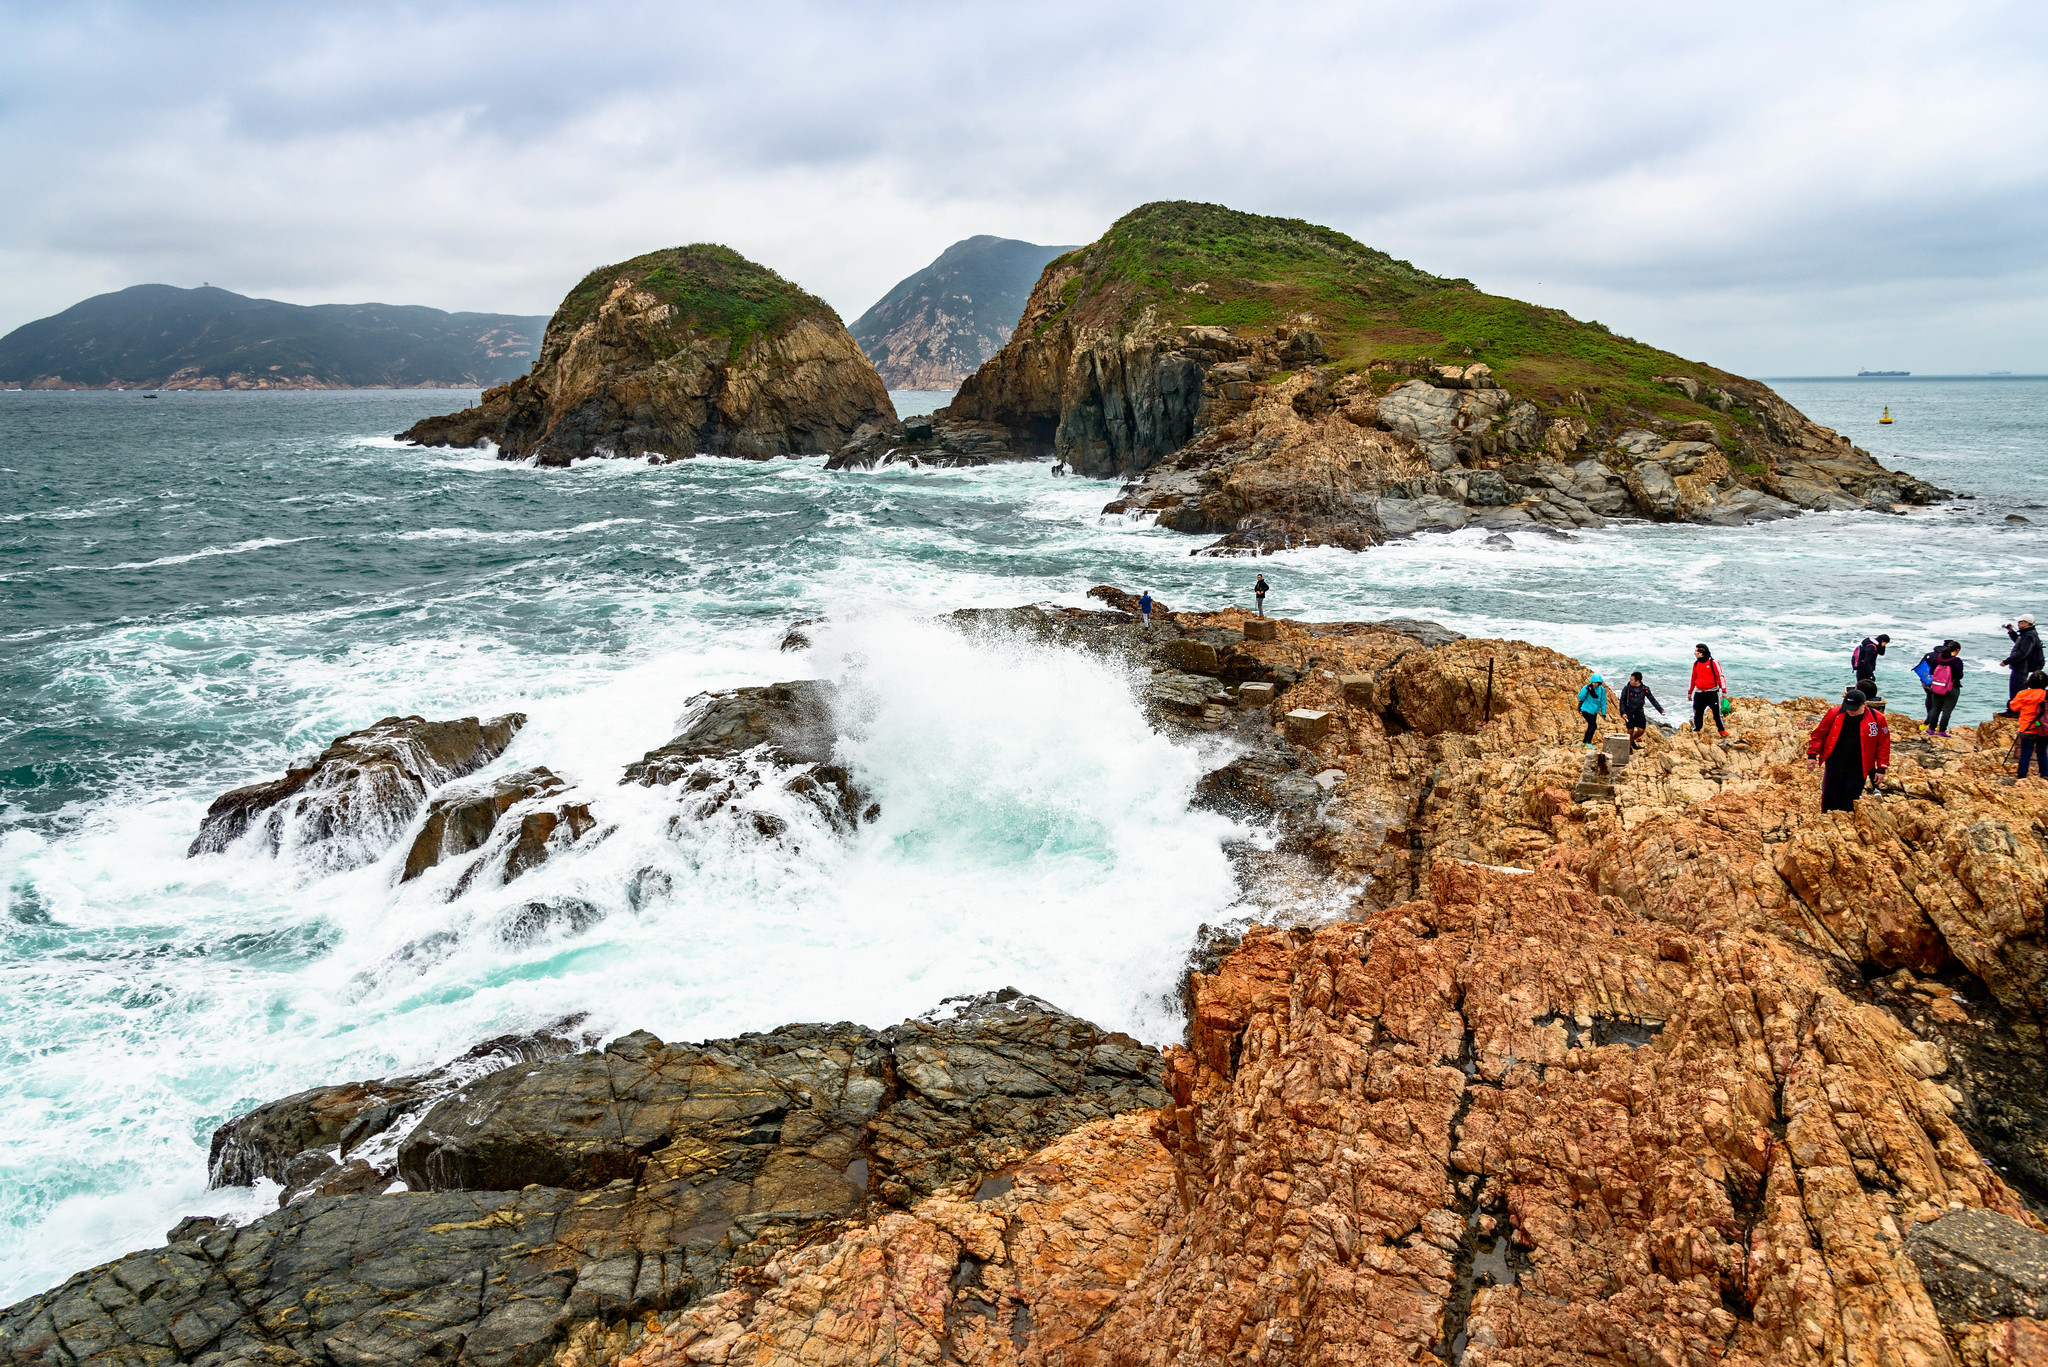 Cape D'Aguilar-flickr-28-02-2020